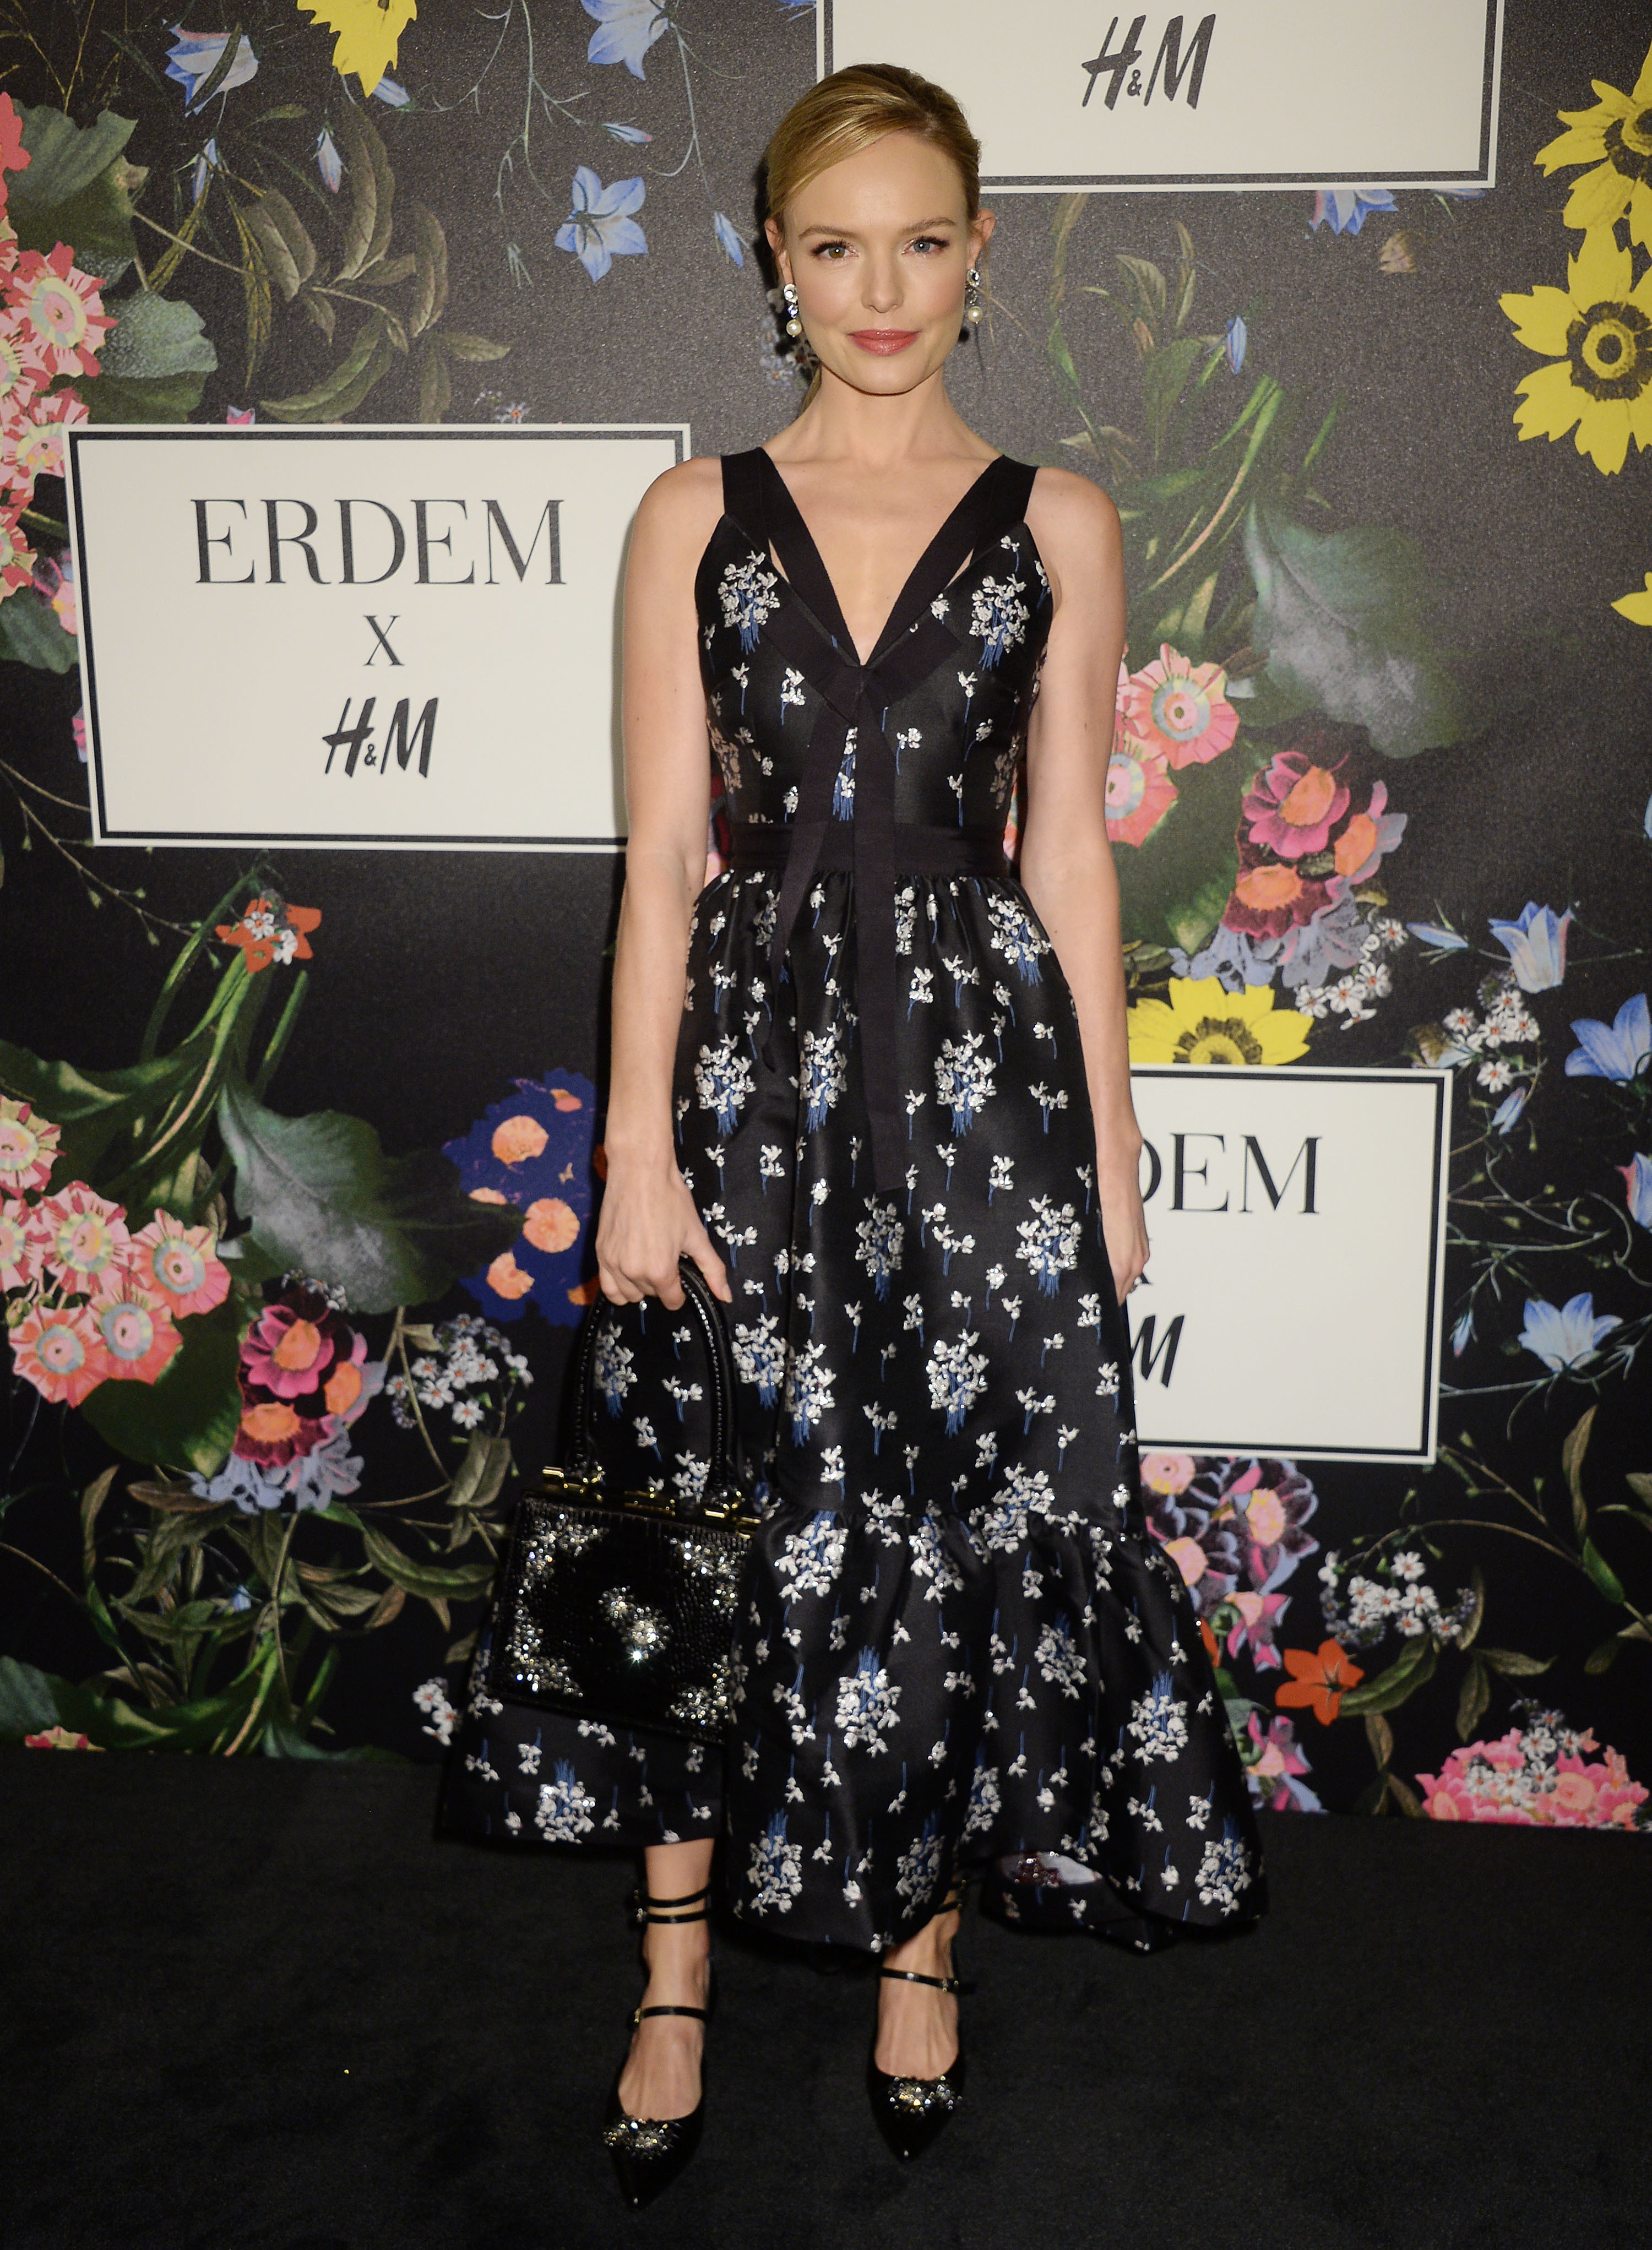 Kate Bosworth attends the Erdem x H&M Launch event in Los Angeles on Oct. 18, 2017.